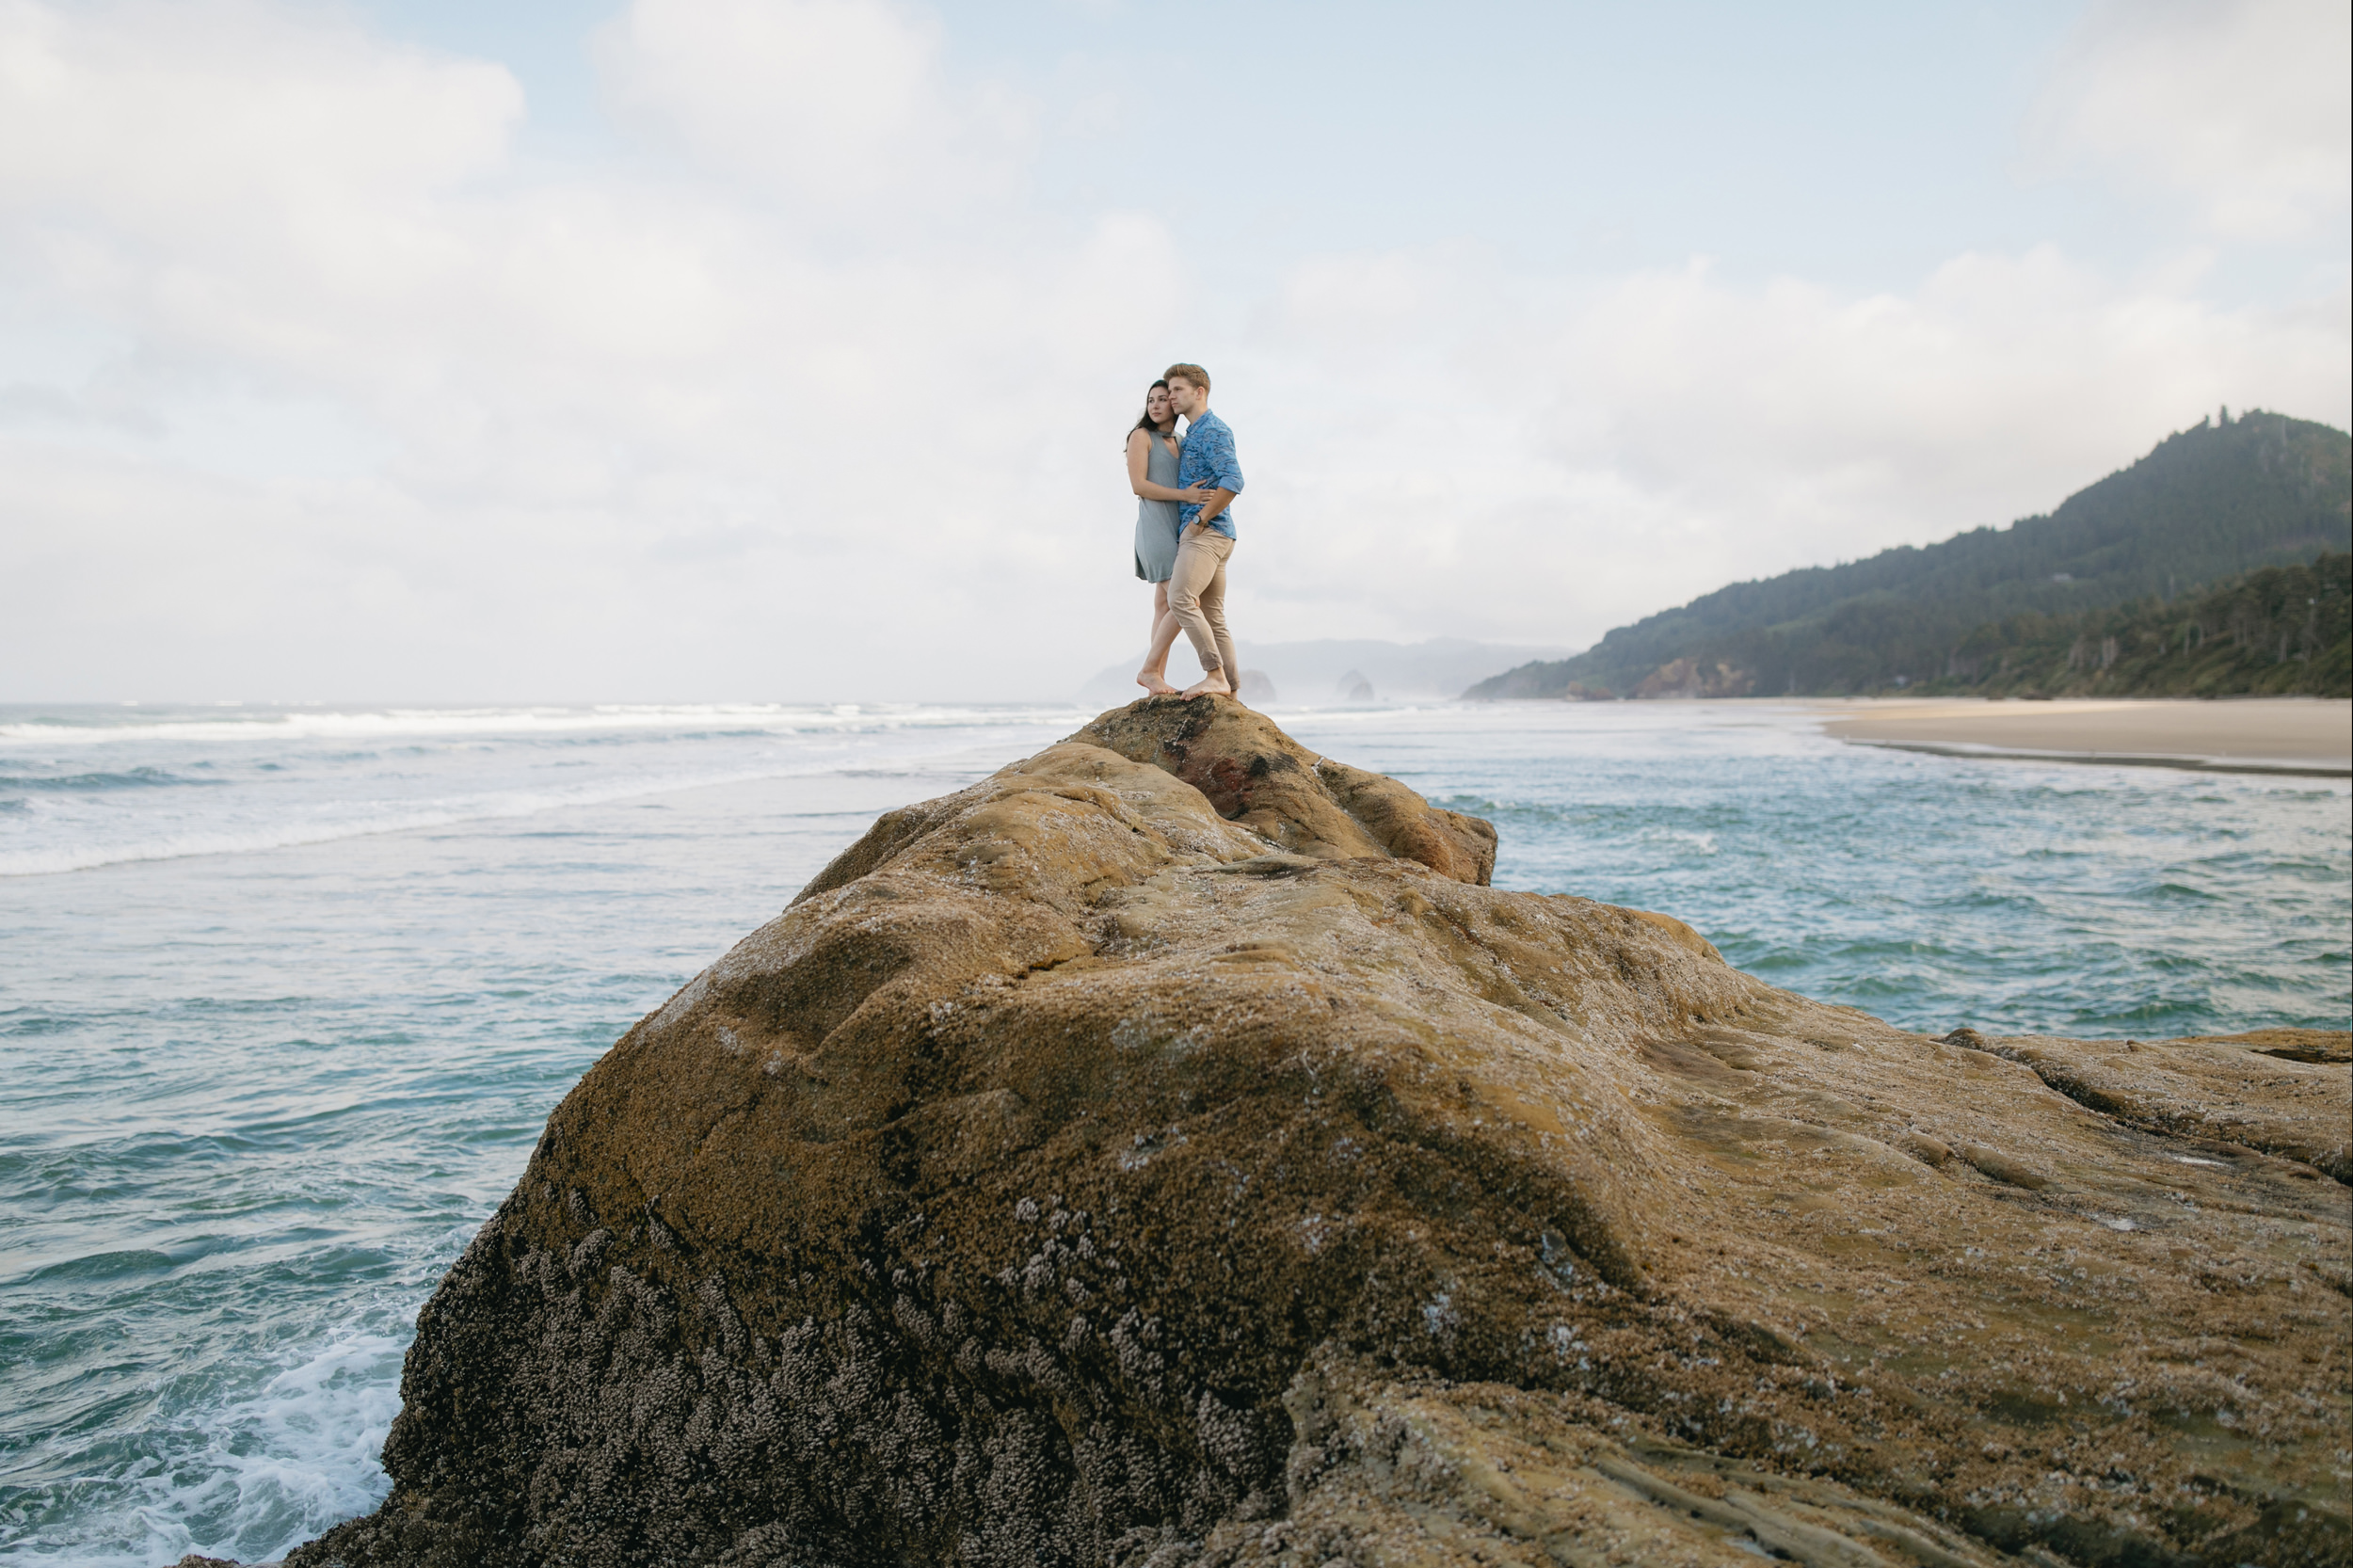 Hug-Point-Adventure-Engagement-Photography-Oregon-Destination-Elopement-Photographer101.JPG